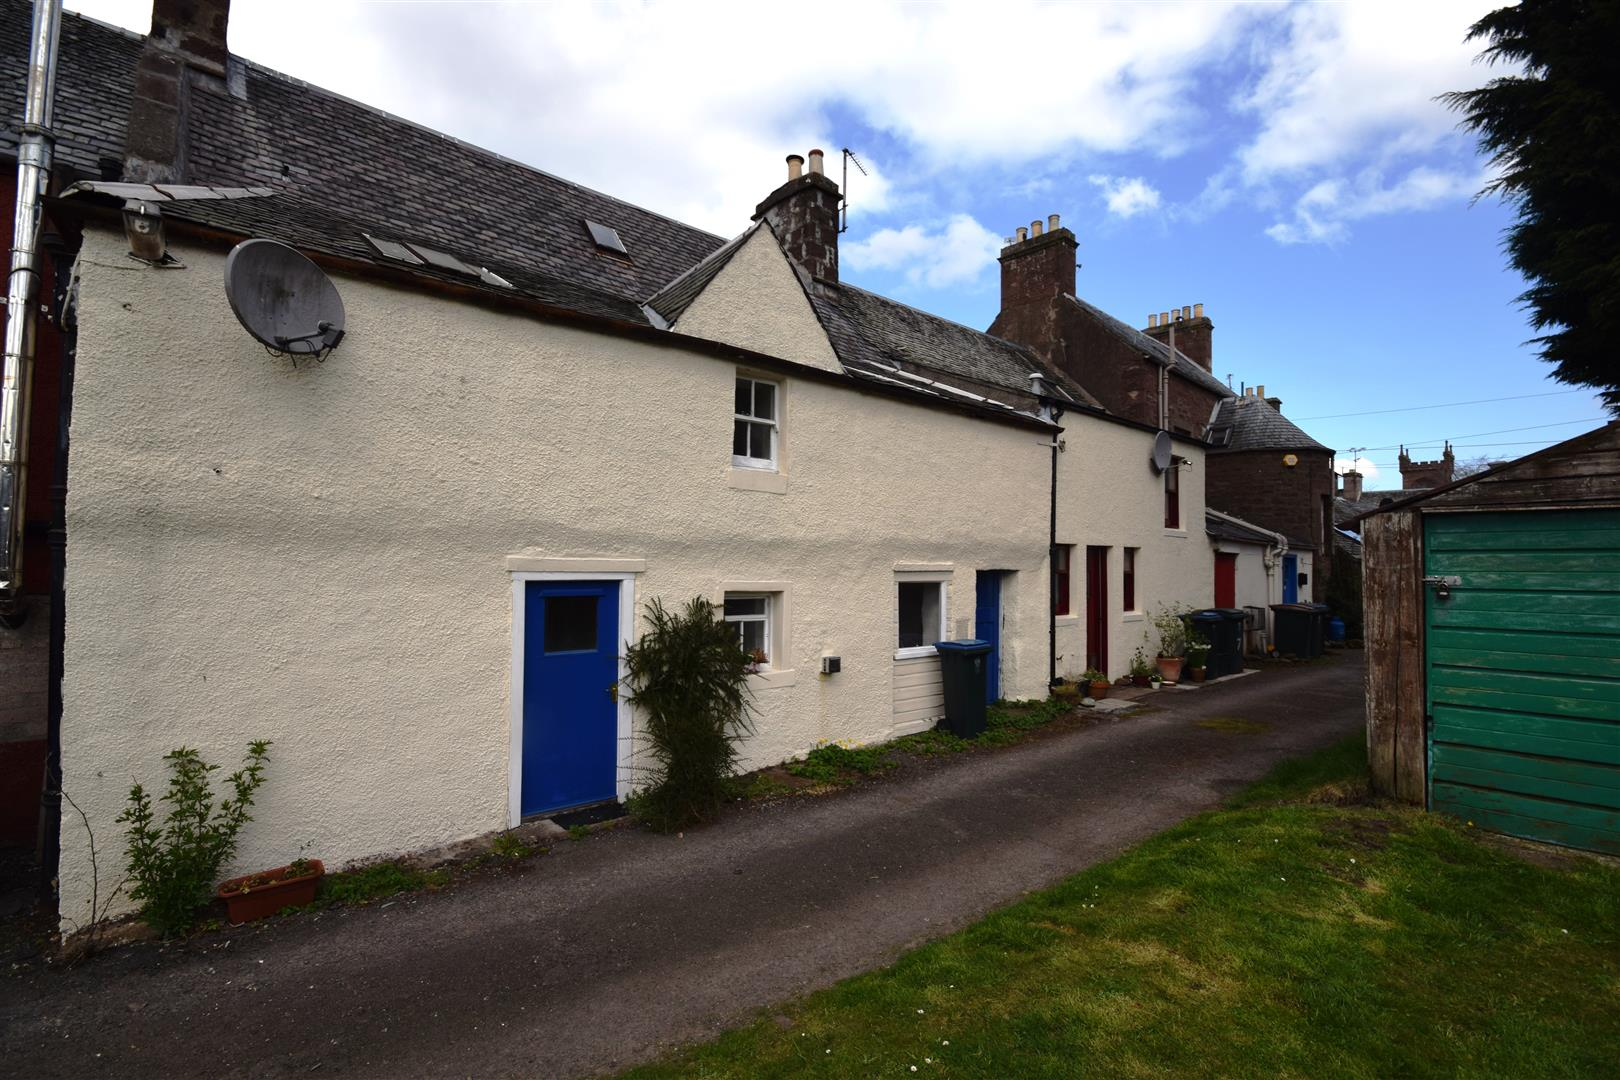 9, Drummond Street, Muthill, Crieff, Perthshire, PH5 2AN, UK